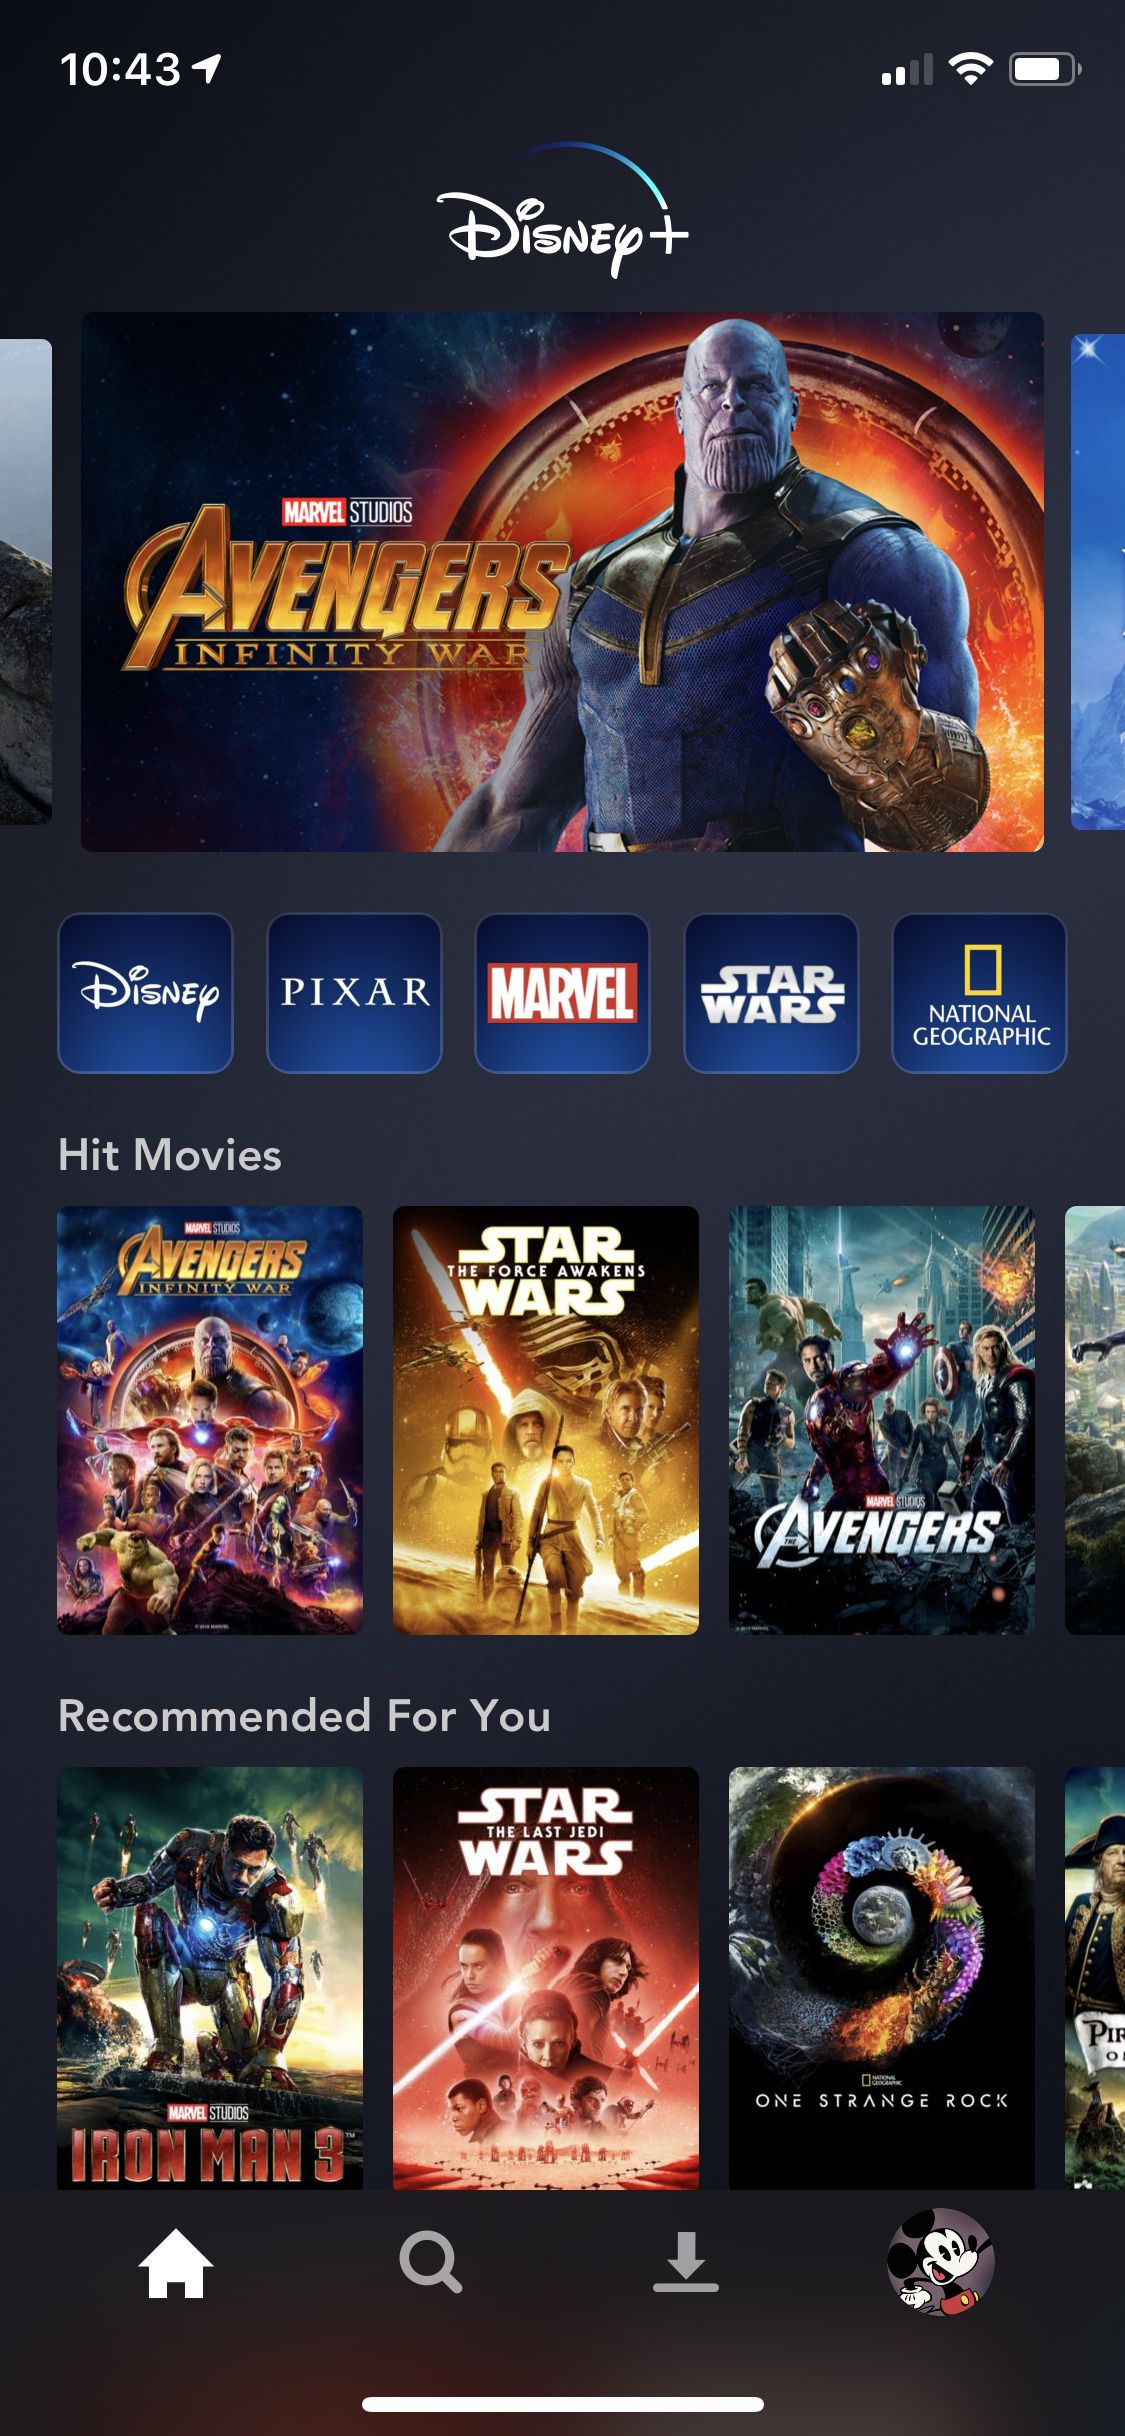 Capture d'écran de Disney + sur IOS